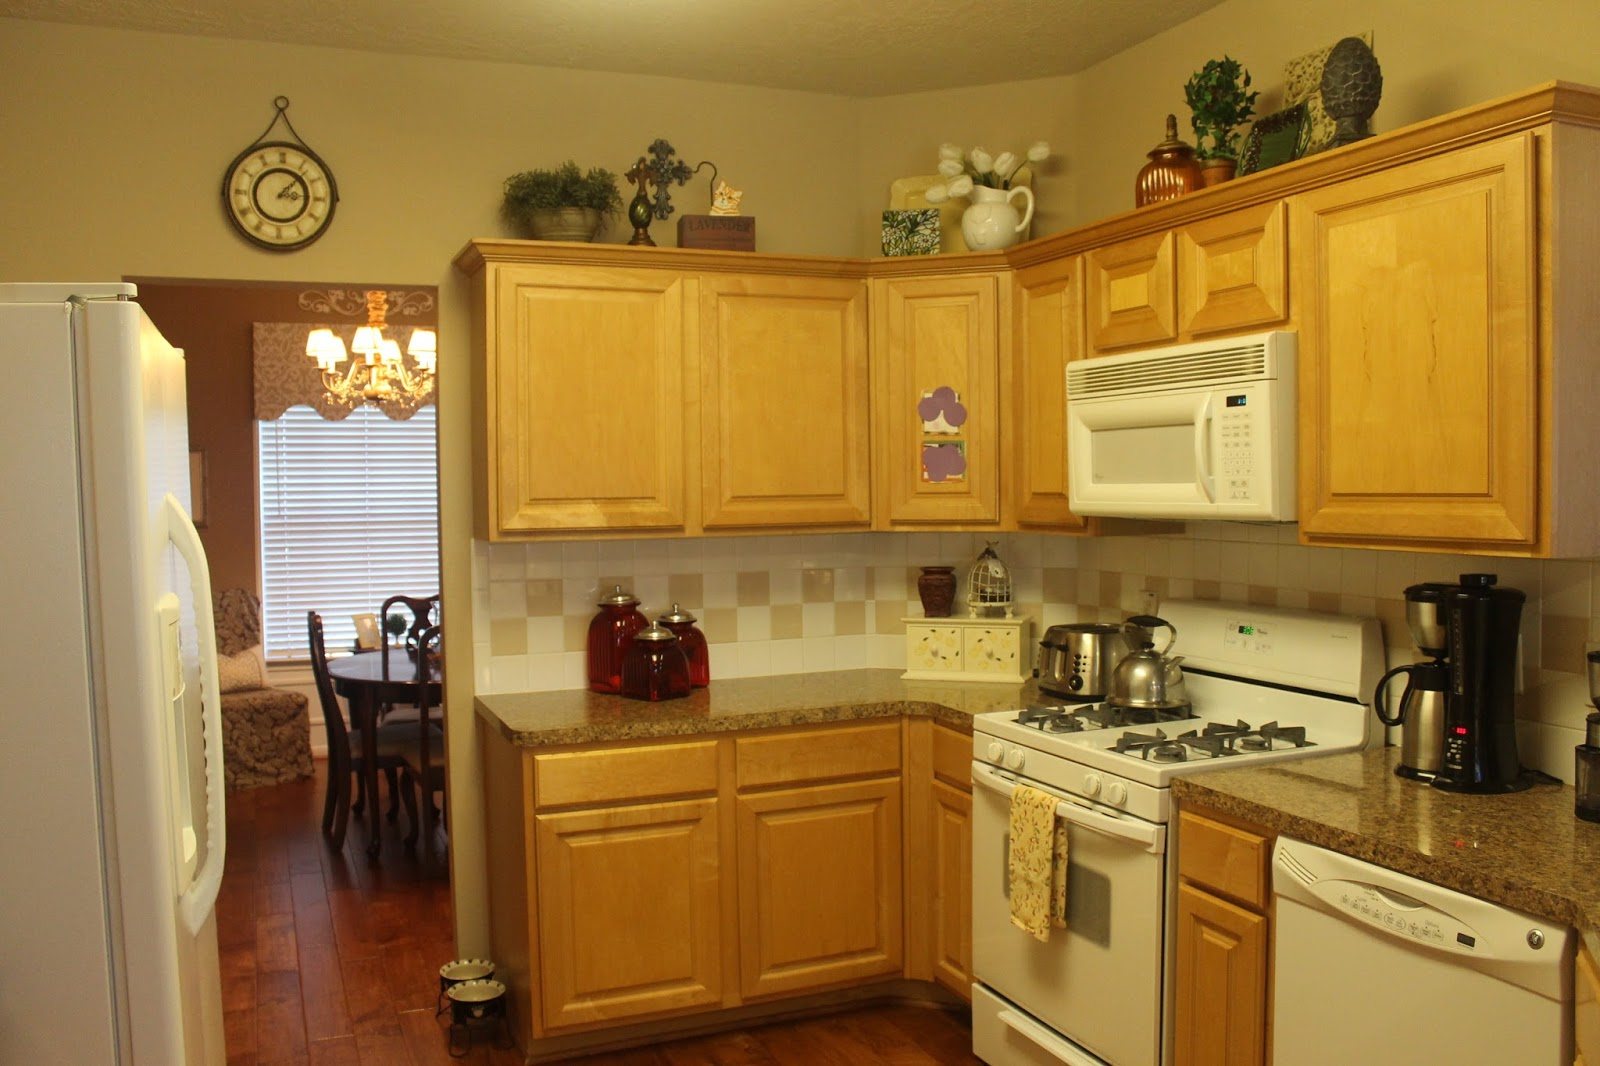 charming Rearranging Kitchen Cabinets #1: Rearranging Kitchen Cabinets